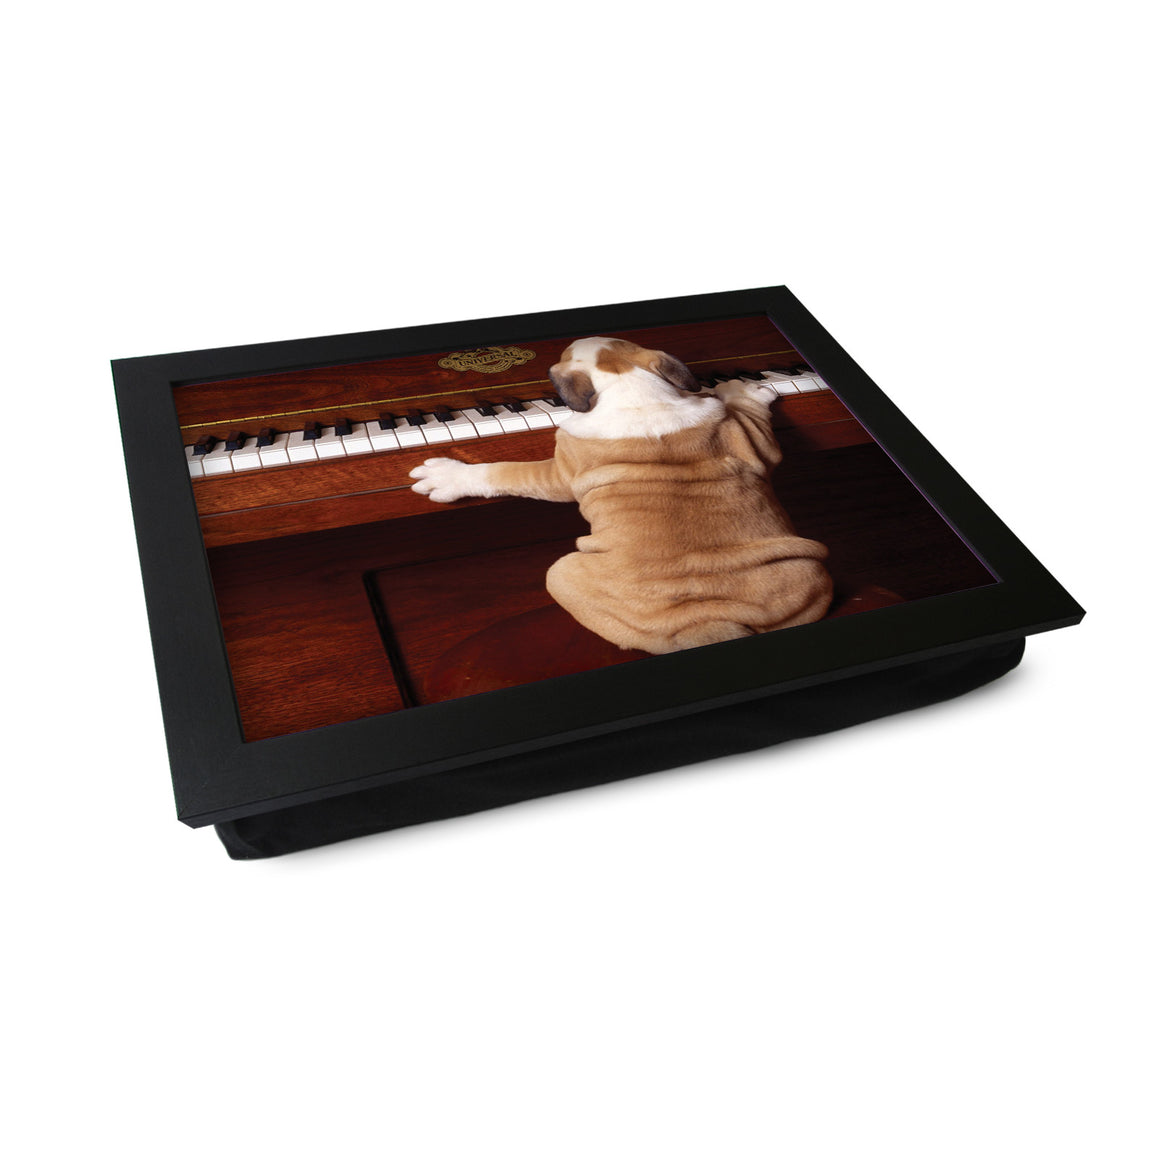 Bulldog Puppy Playing Piano Lap Tray - L0358